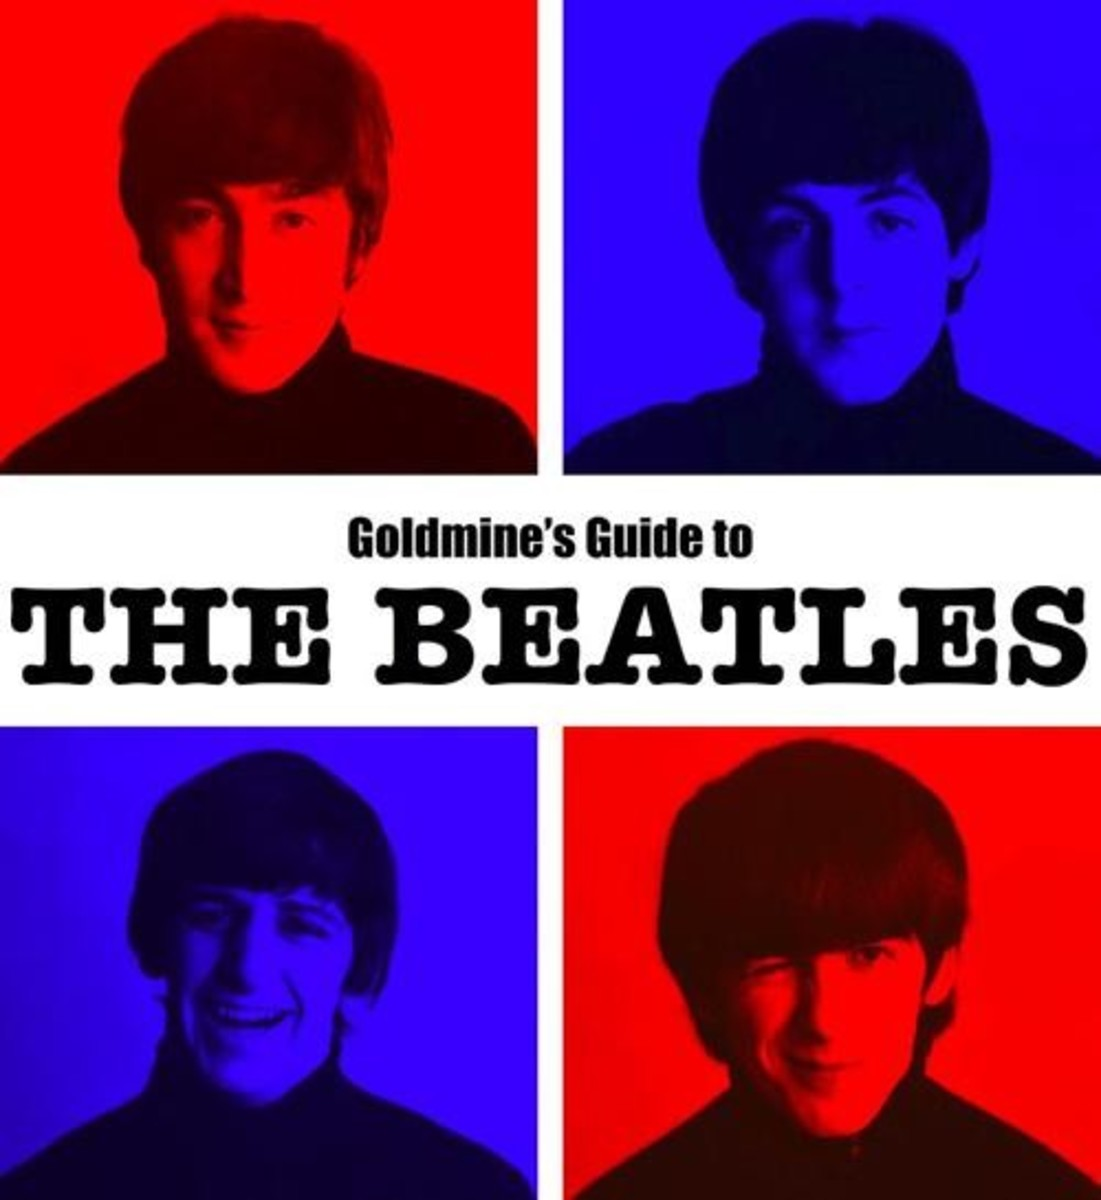 Goldmine magazine's guide to The Beatles